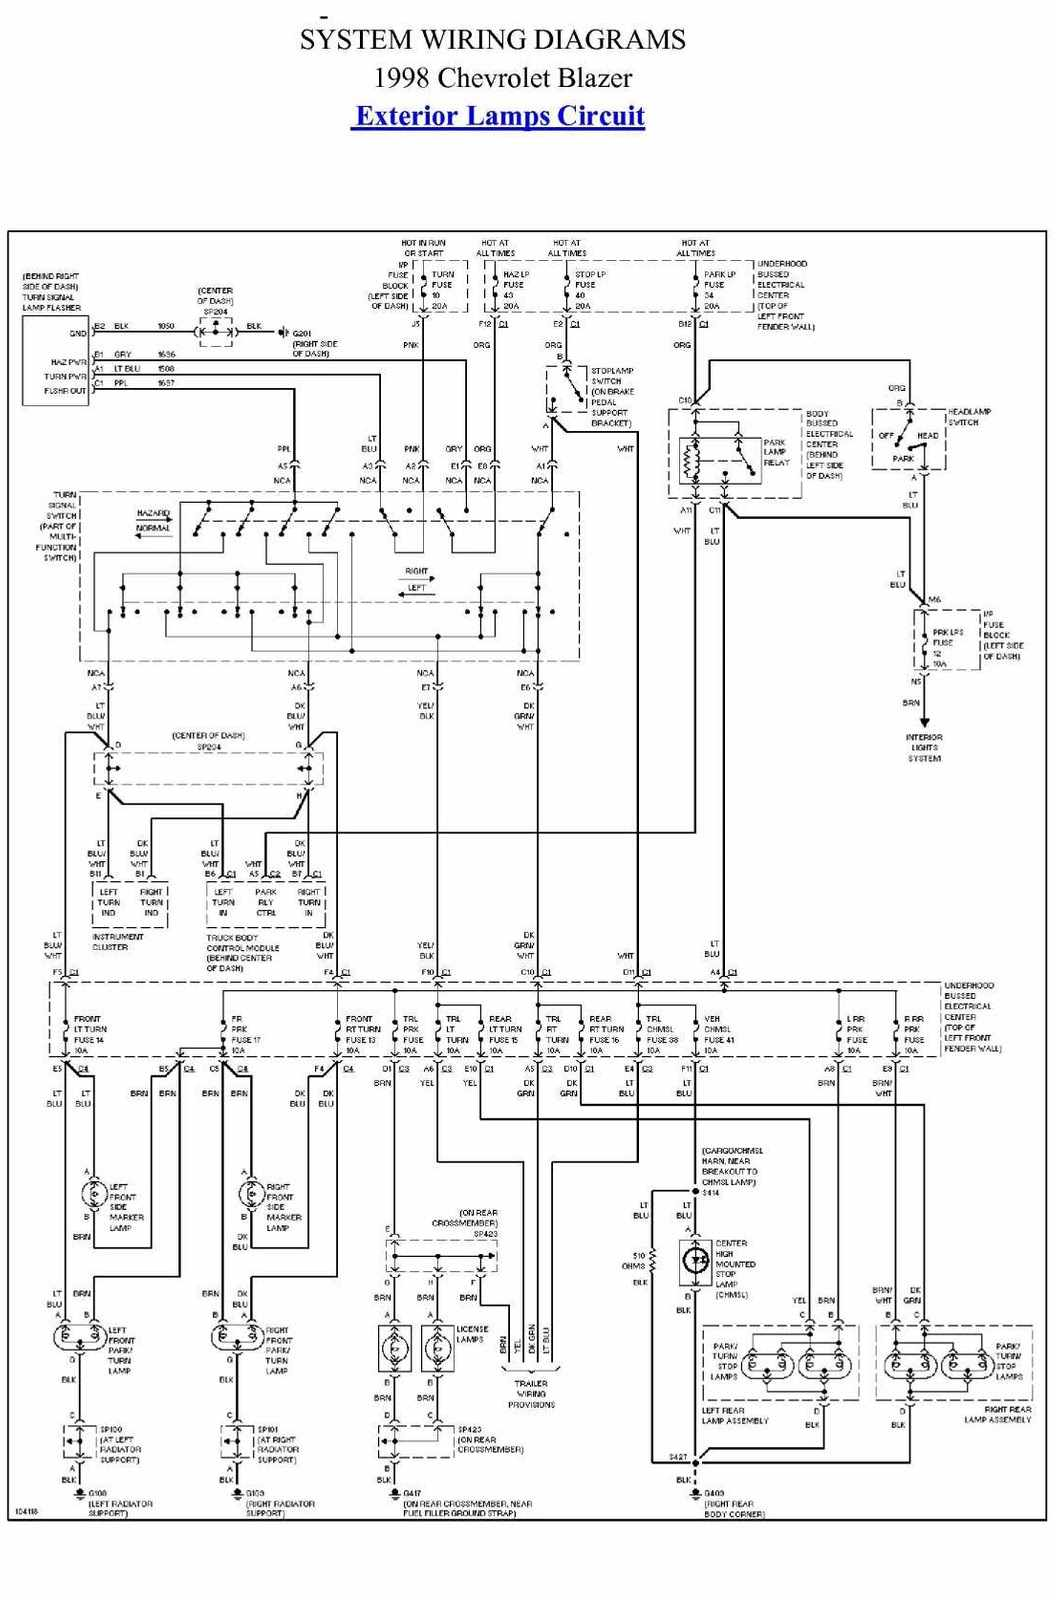 exterior lamp circuit diagram of 1998 chevrolet blazer jpg wiring diagrams for 1998 chevy trucks the wiring diagram 1998 chevy blazer ignition wiring diagram 1998